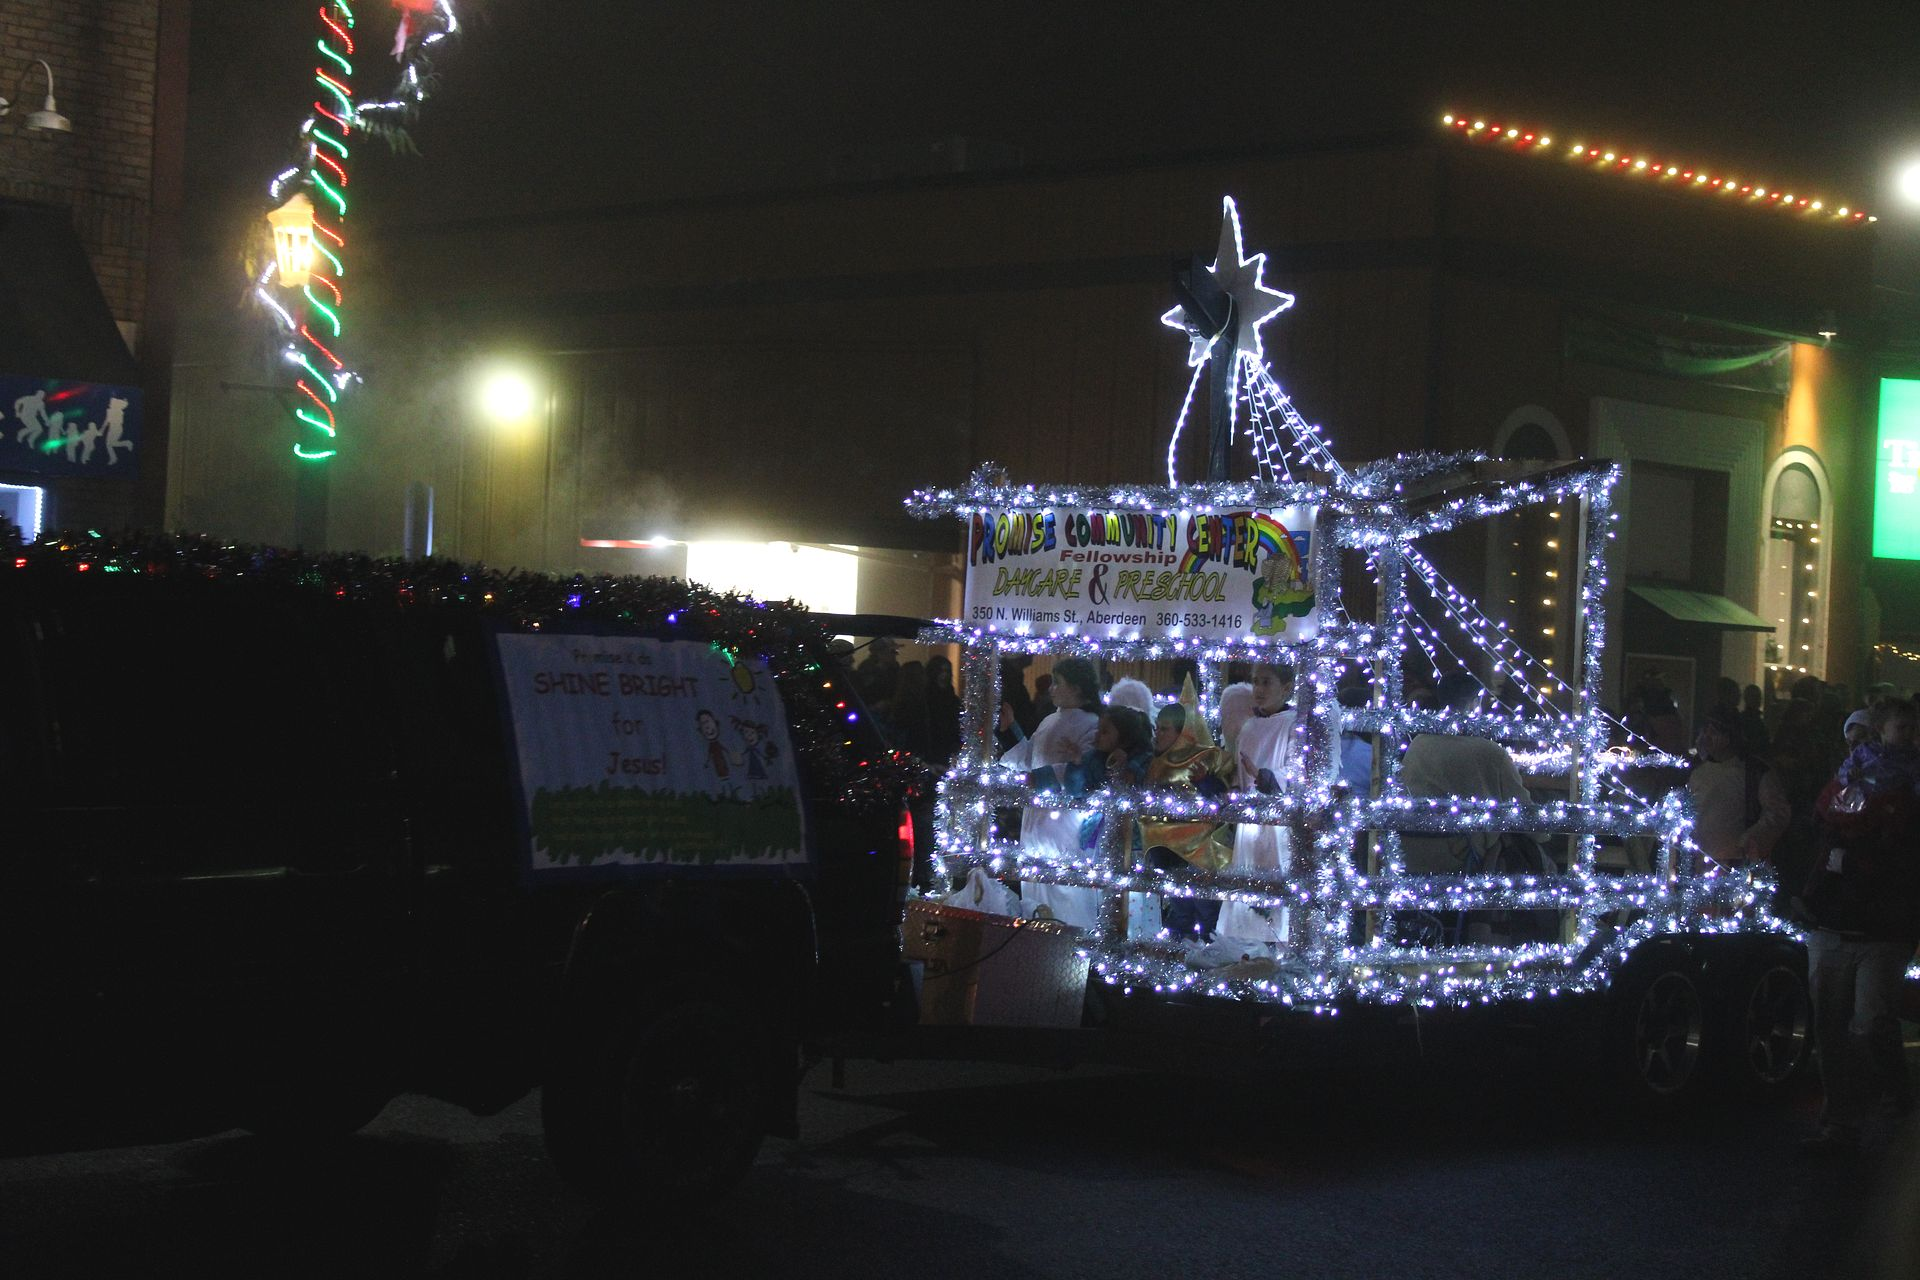 027 Montesano Festival of Lights December 14, 2019